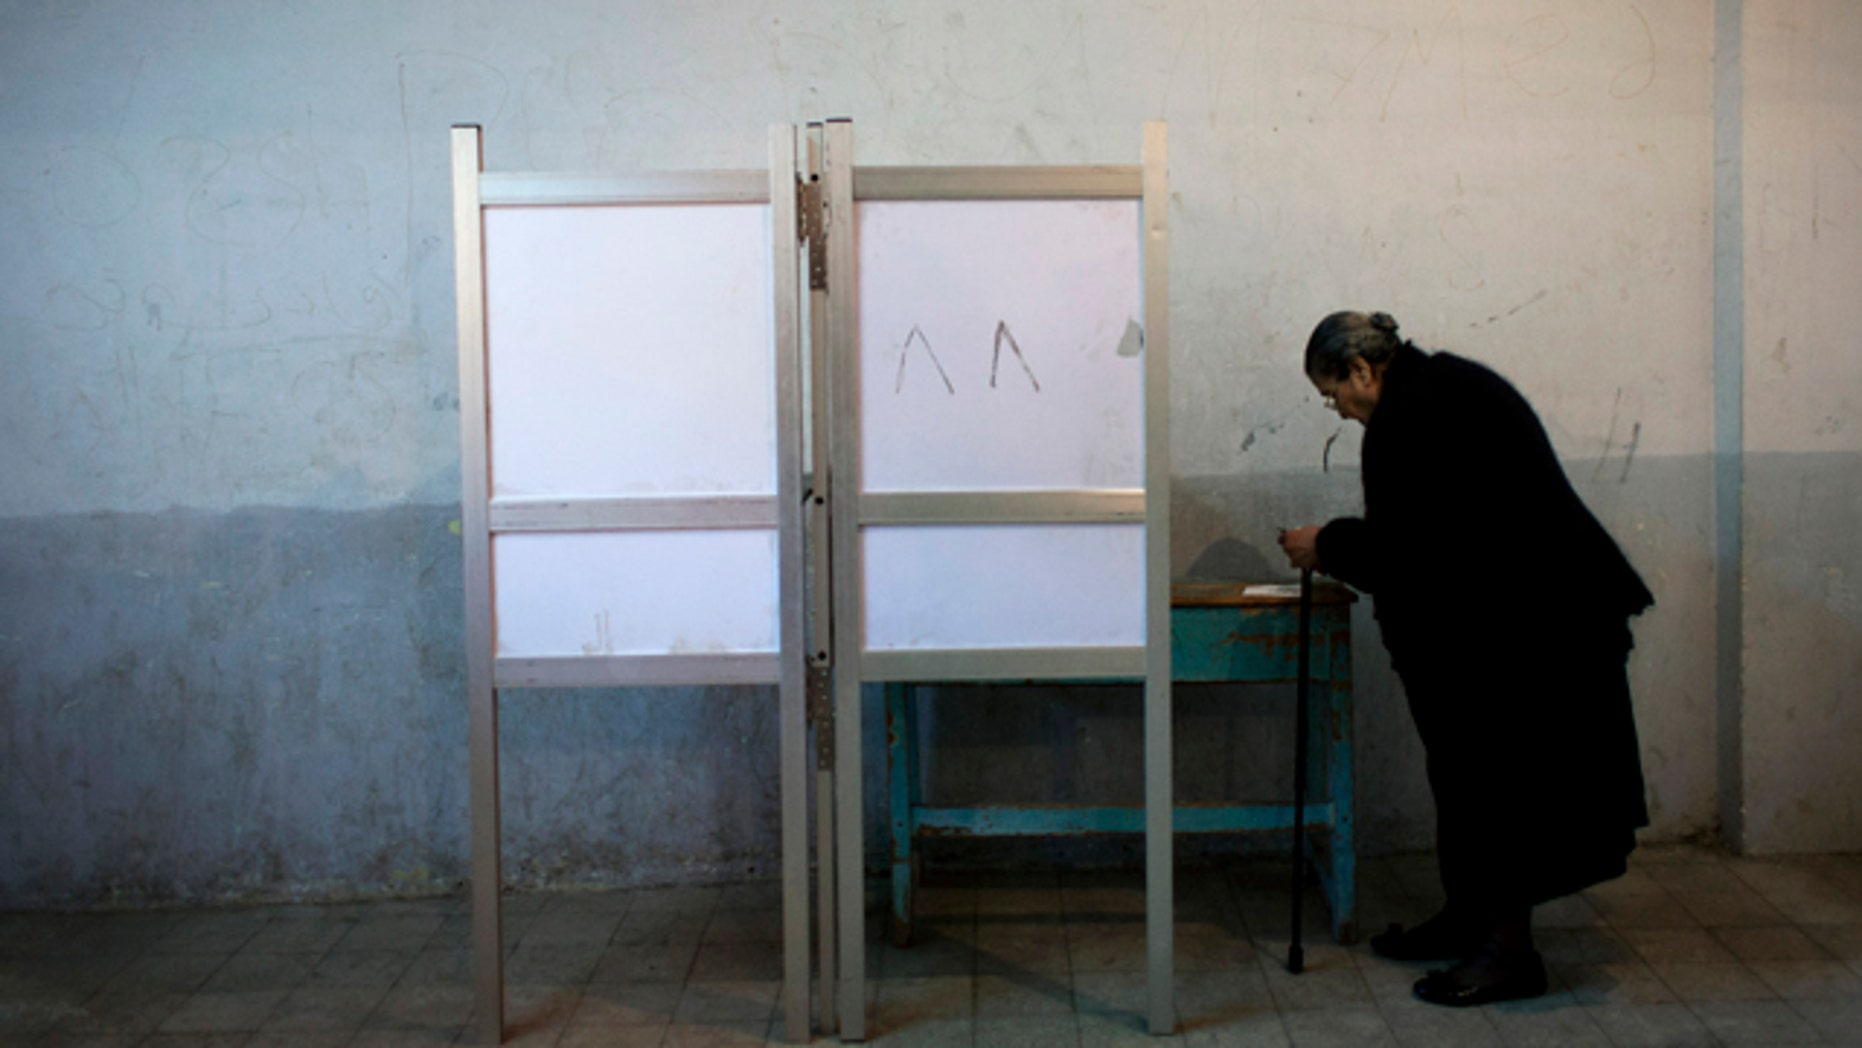 Dec. 15, 2012: An Egyptian woman votes at polling center during a referendum on a disputed constitution drafted by Islamist supporters of President Mohammed Morsi in Cairo.